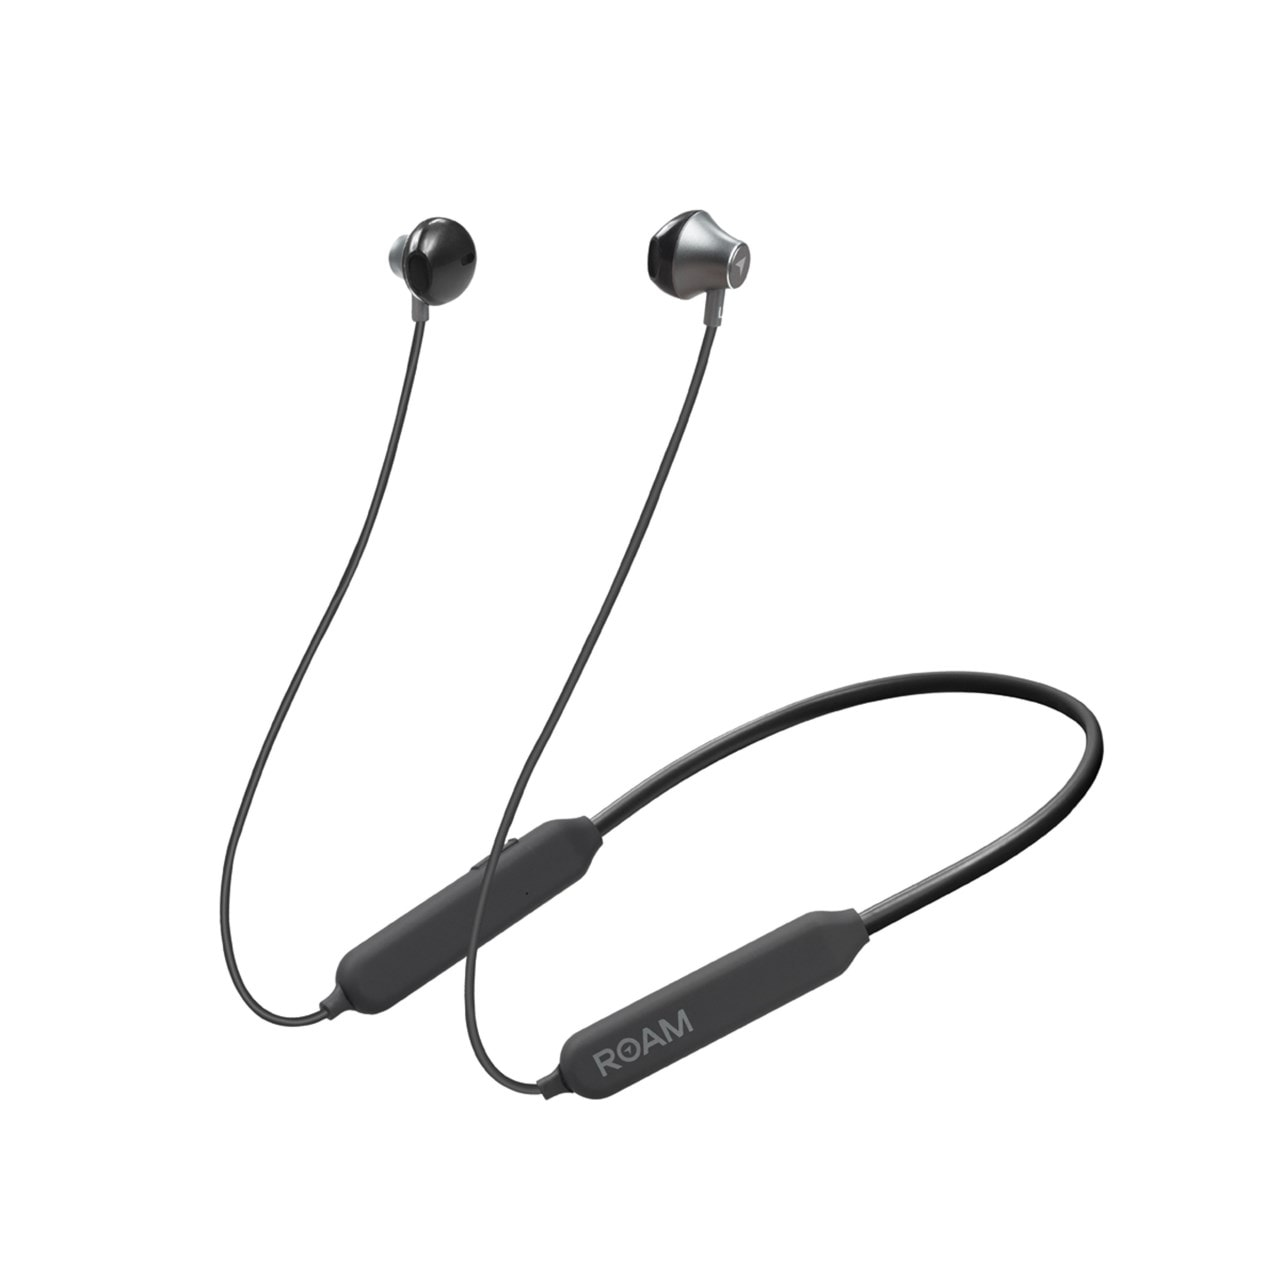 Roam Voyager Graphite Bluetooth Earphones - 1